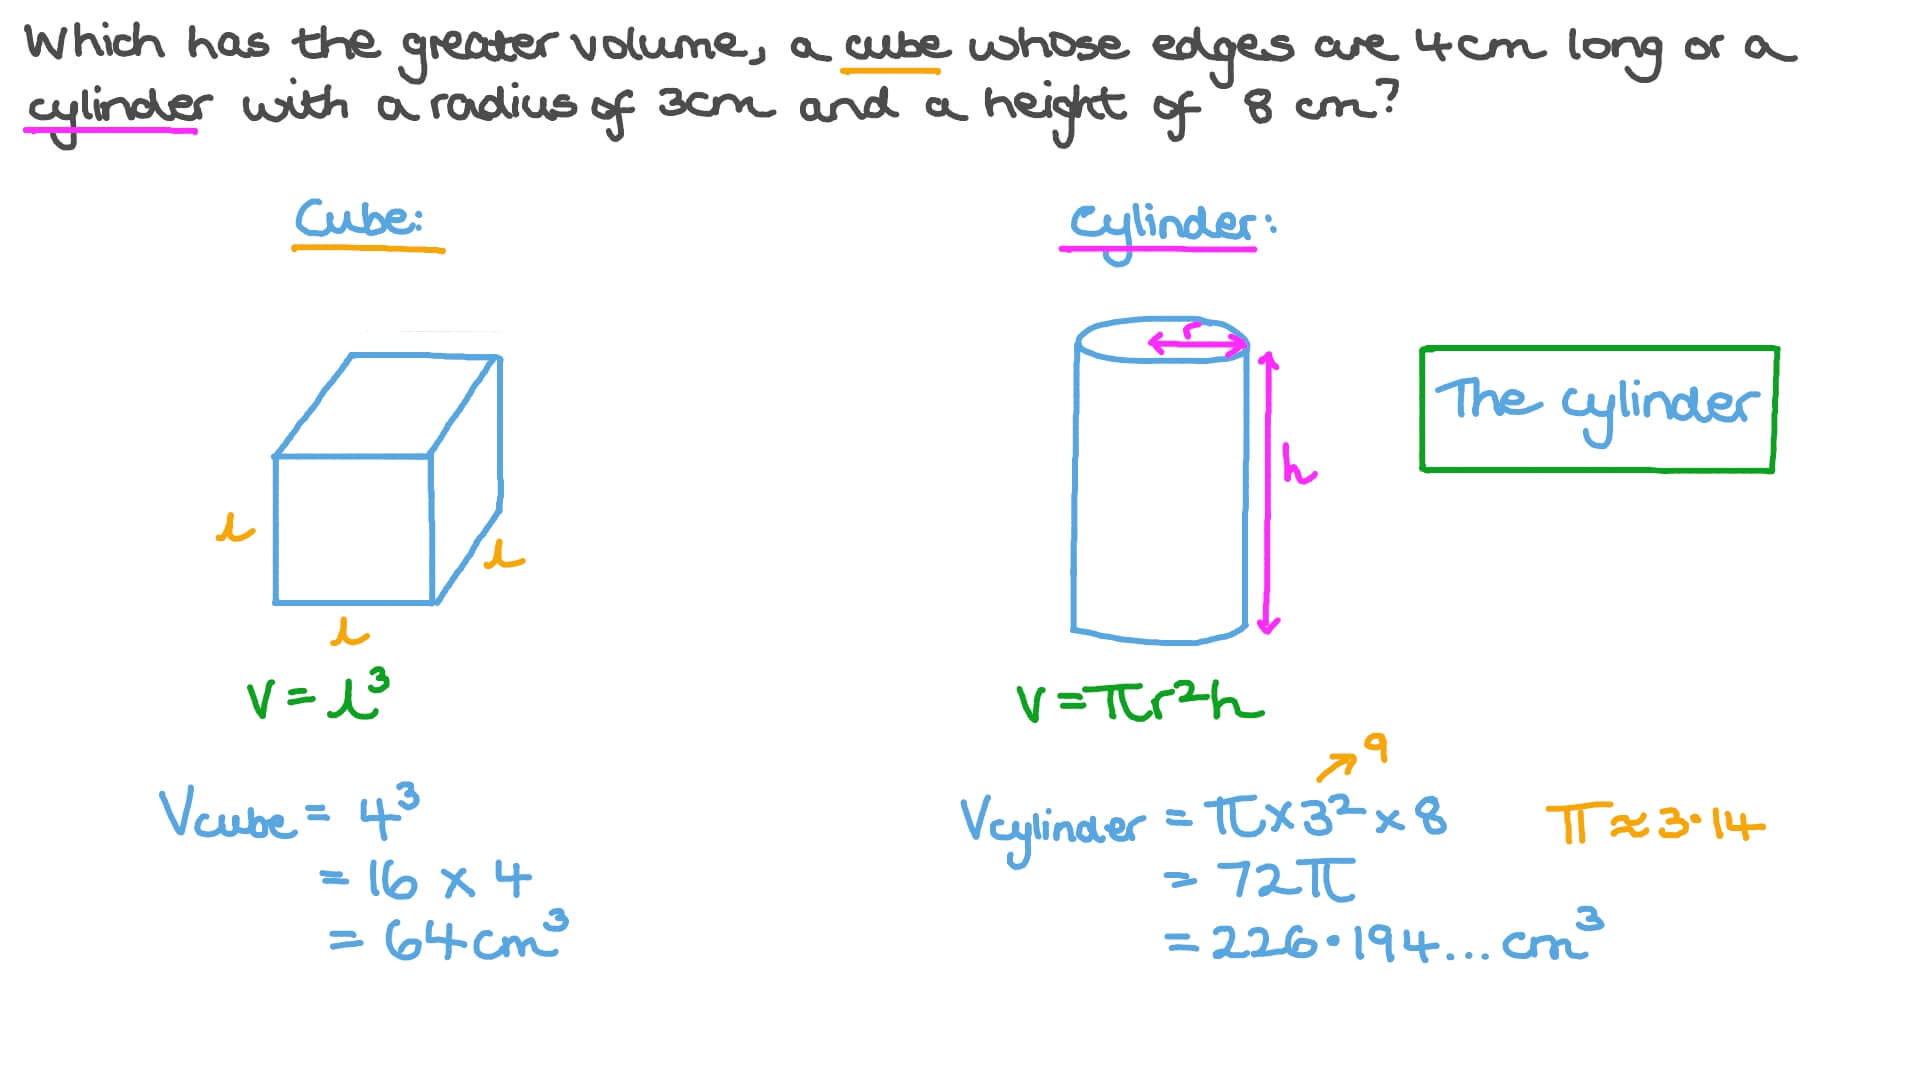 hight resolution of Question Video: Comparing the Volumes of a Cylinder and a Cube given Their  Dimensions   Nagwa